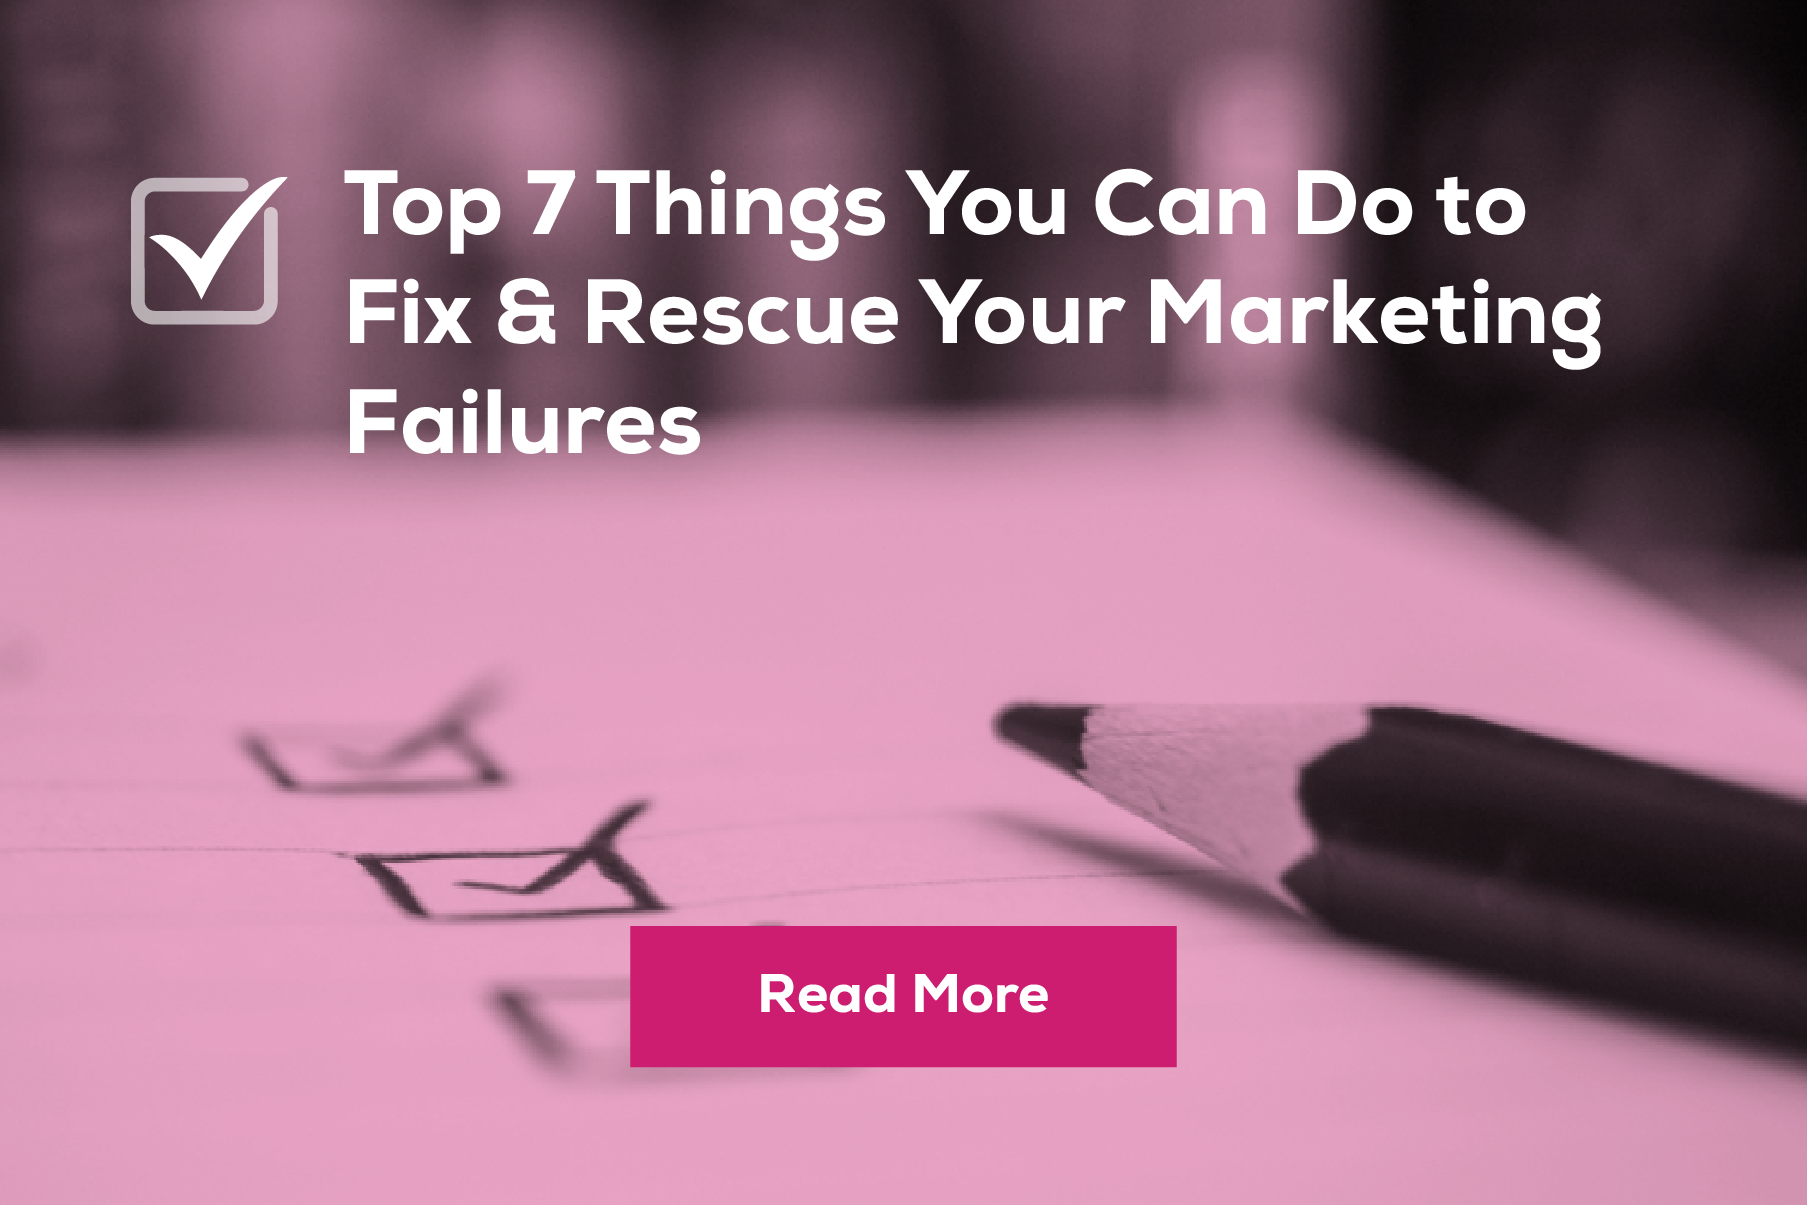 Top 7 Things You Can Do to Fix and Rescue Your Marketing